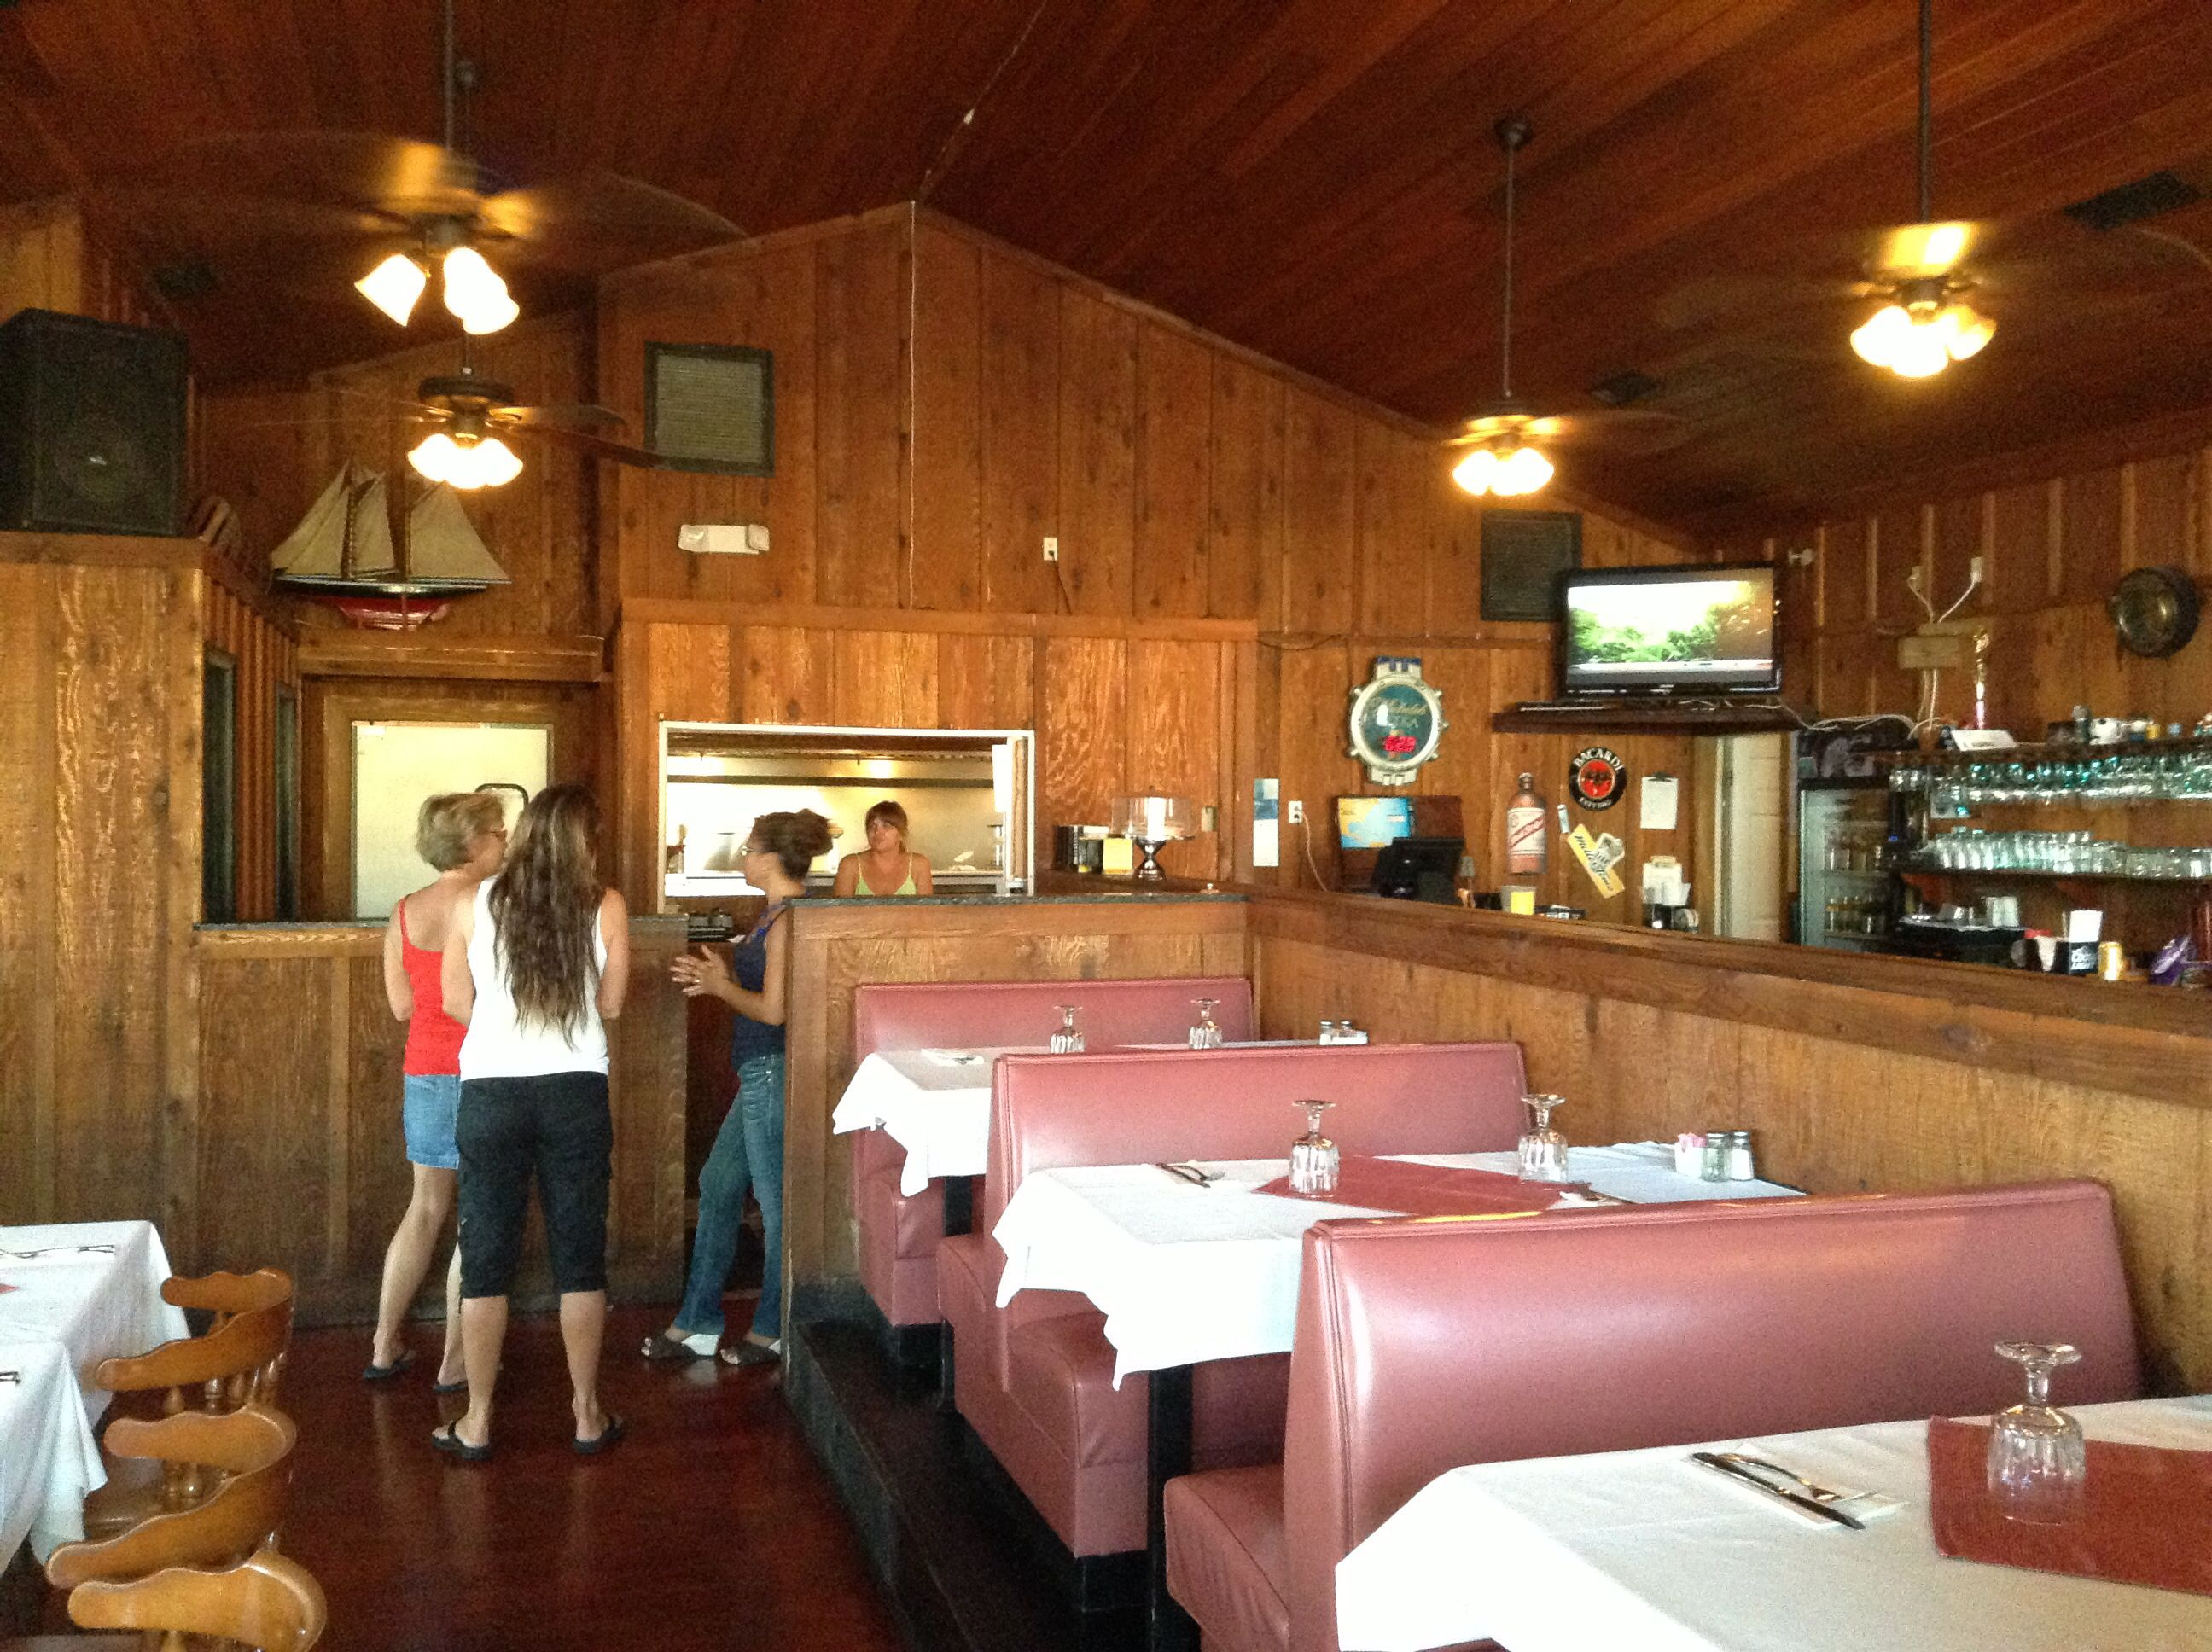 Inside Hungry Iguana Little Cayman Islands A Very Nice And Affordable Restaurants